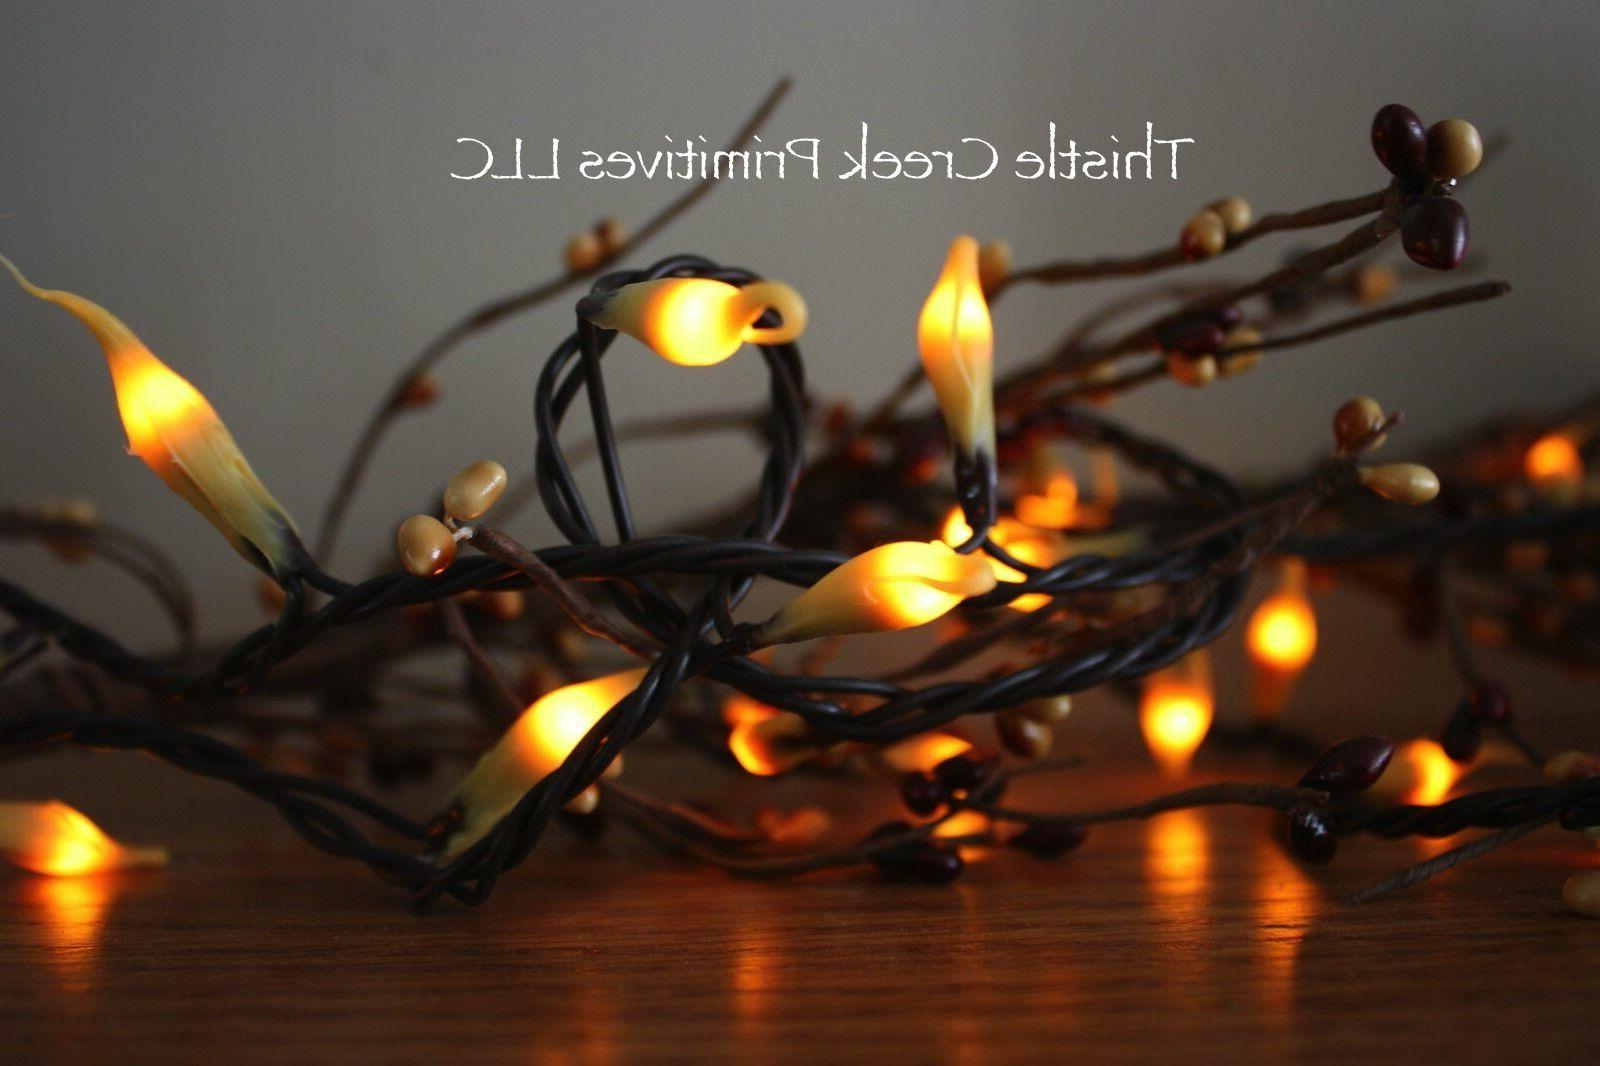 50 Count Country Lights Strand Dipped Silicone - Brown Cord